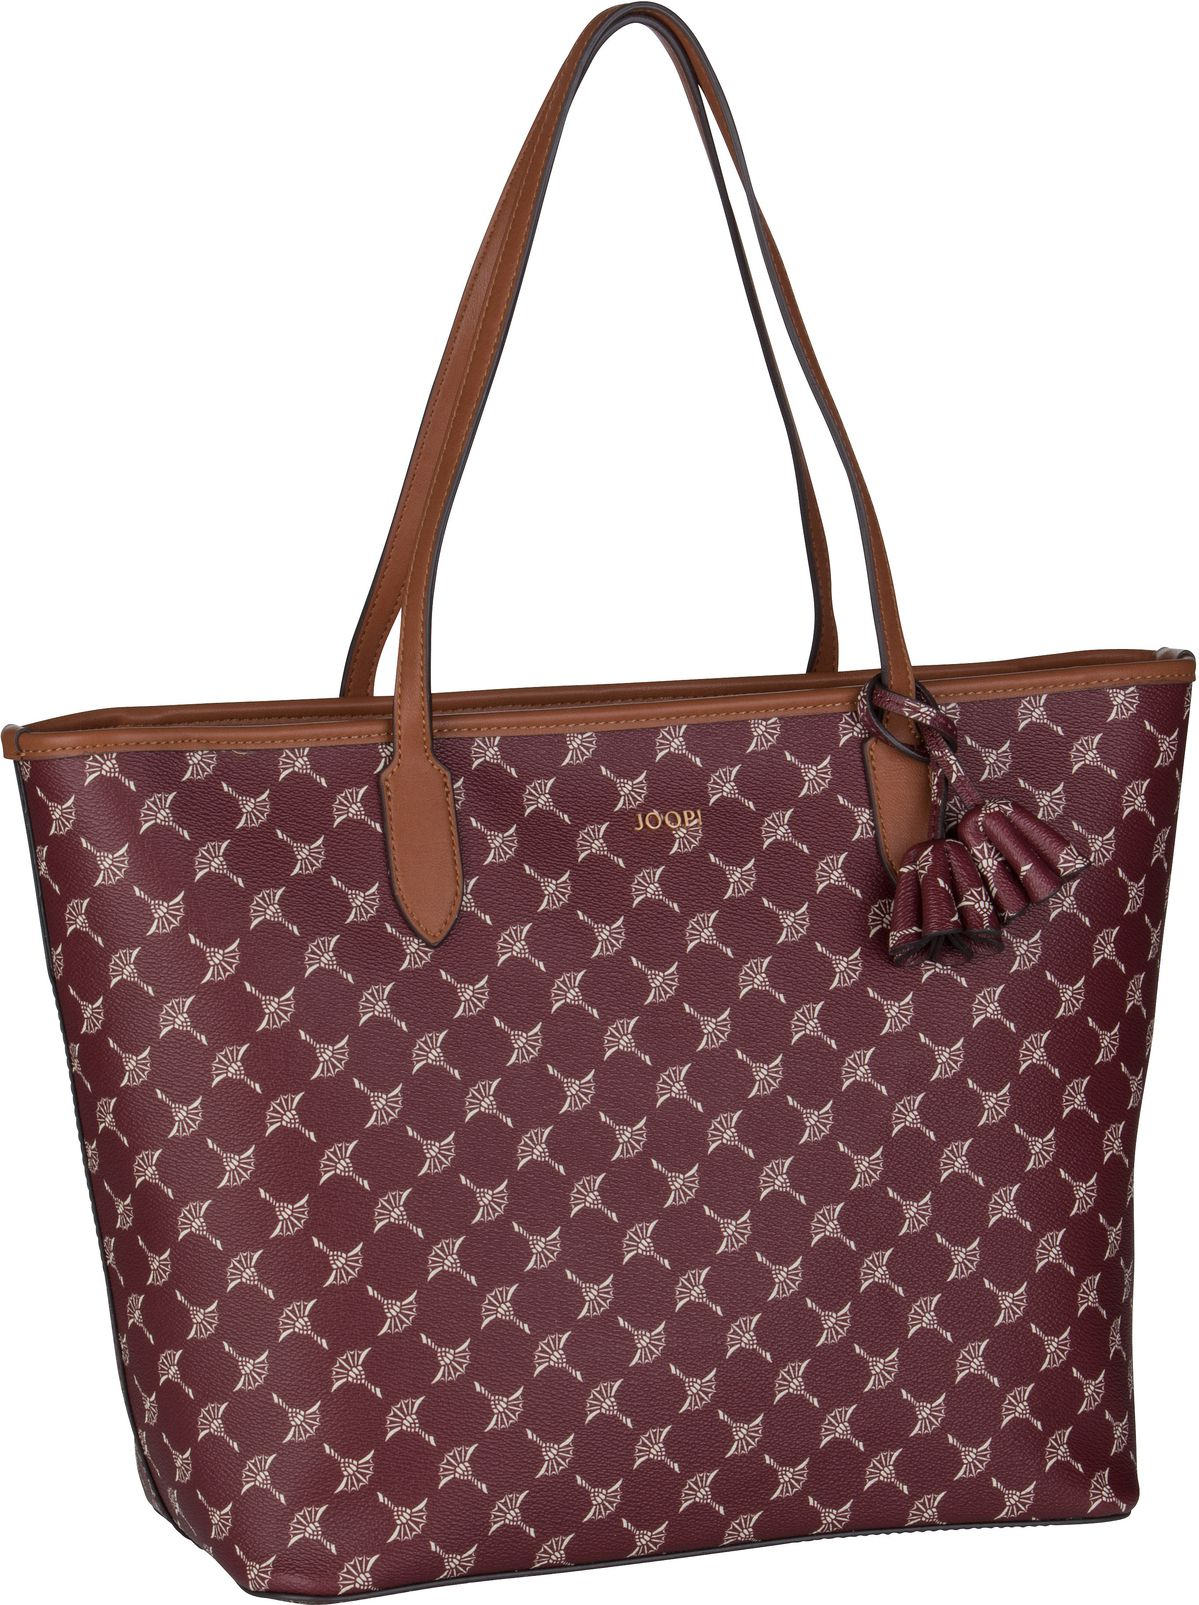 Handtasche Cortina Lara Shopper LHZ Brown